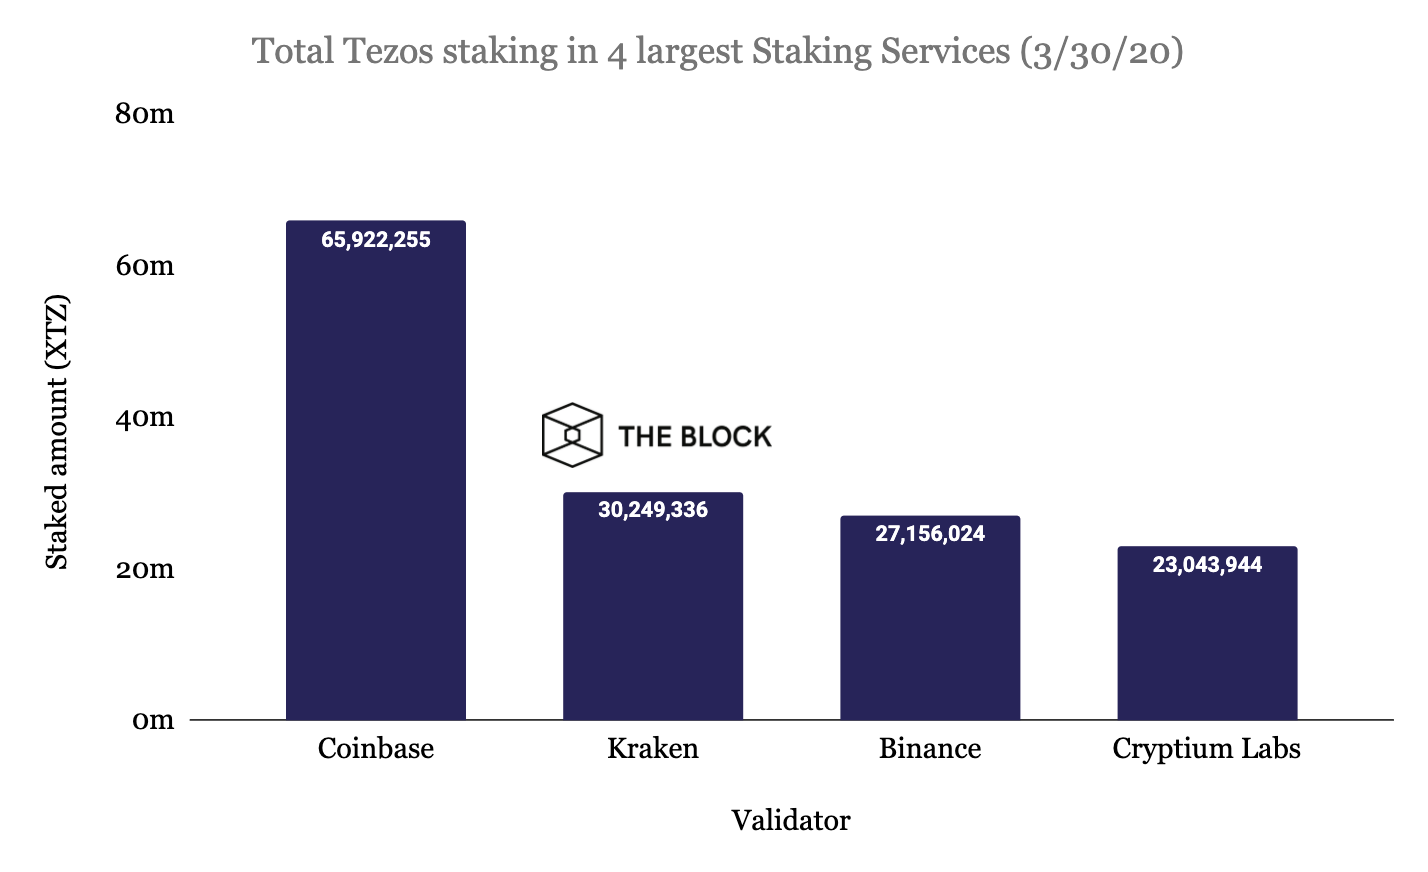 Coinbase Custody is the biggest Tezos staking service, despite charging higher fees